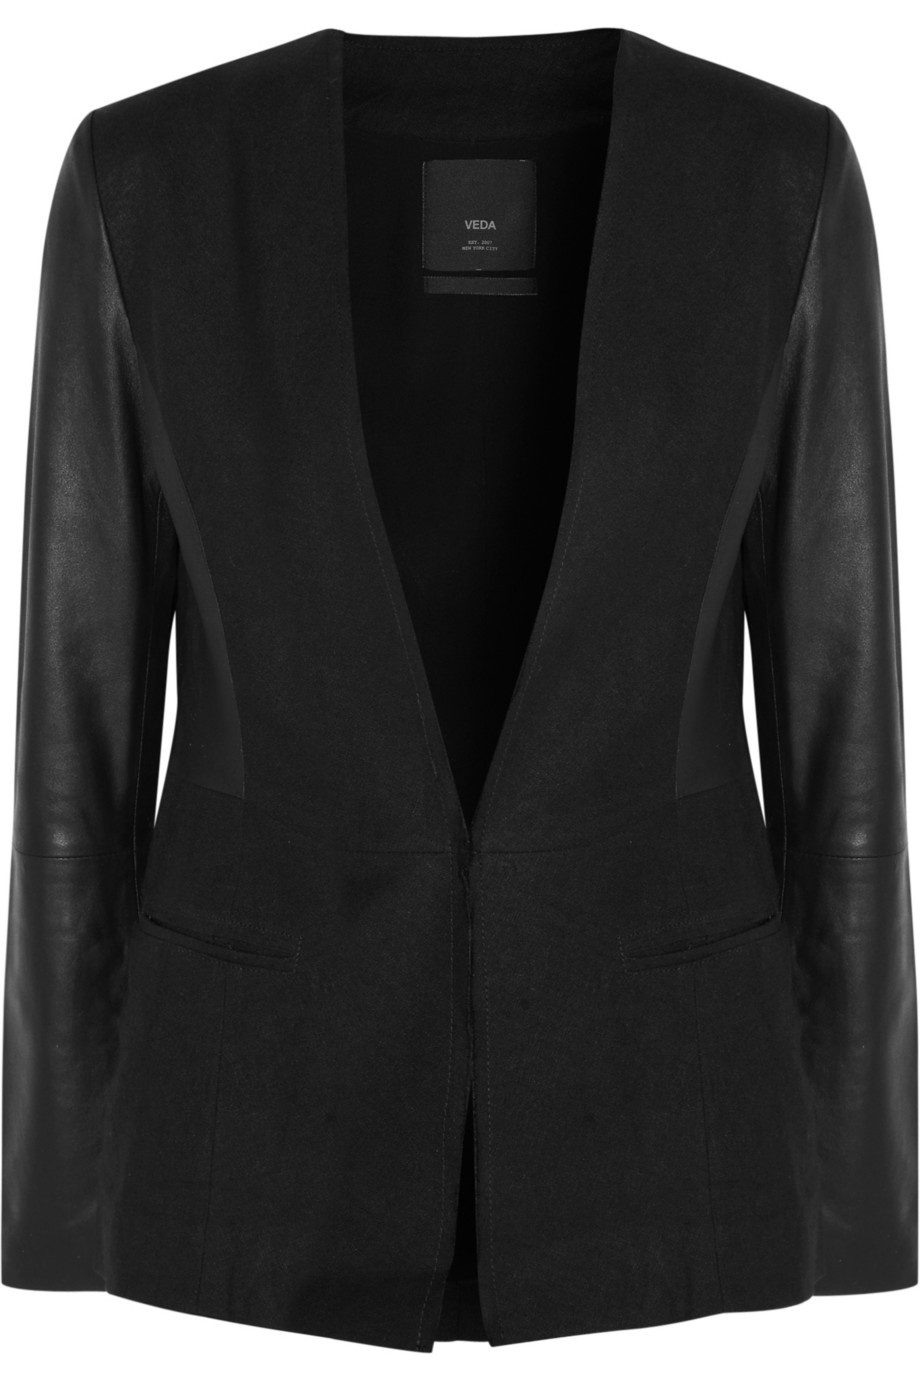 Van Gogh canvas and leather blazer   Veda   50% off   THE OUTNET